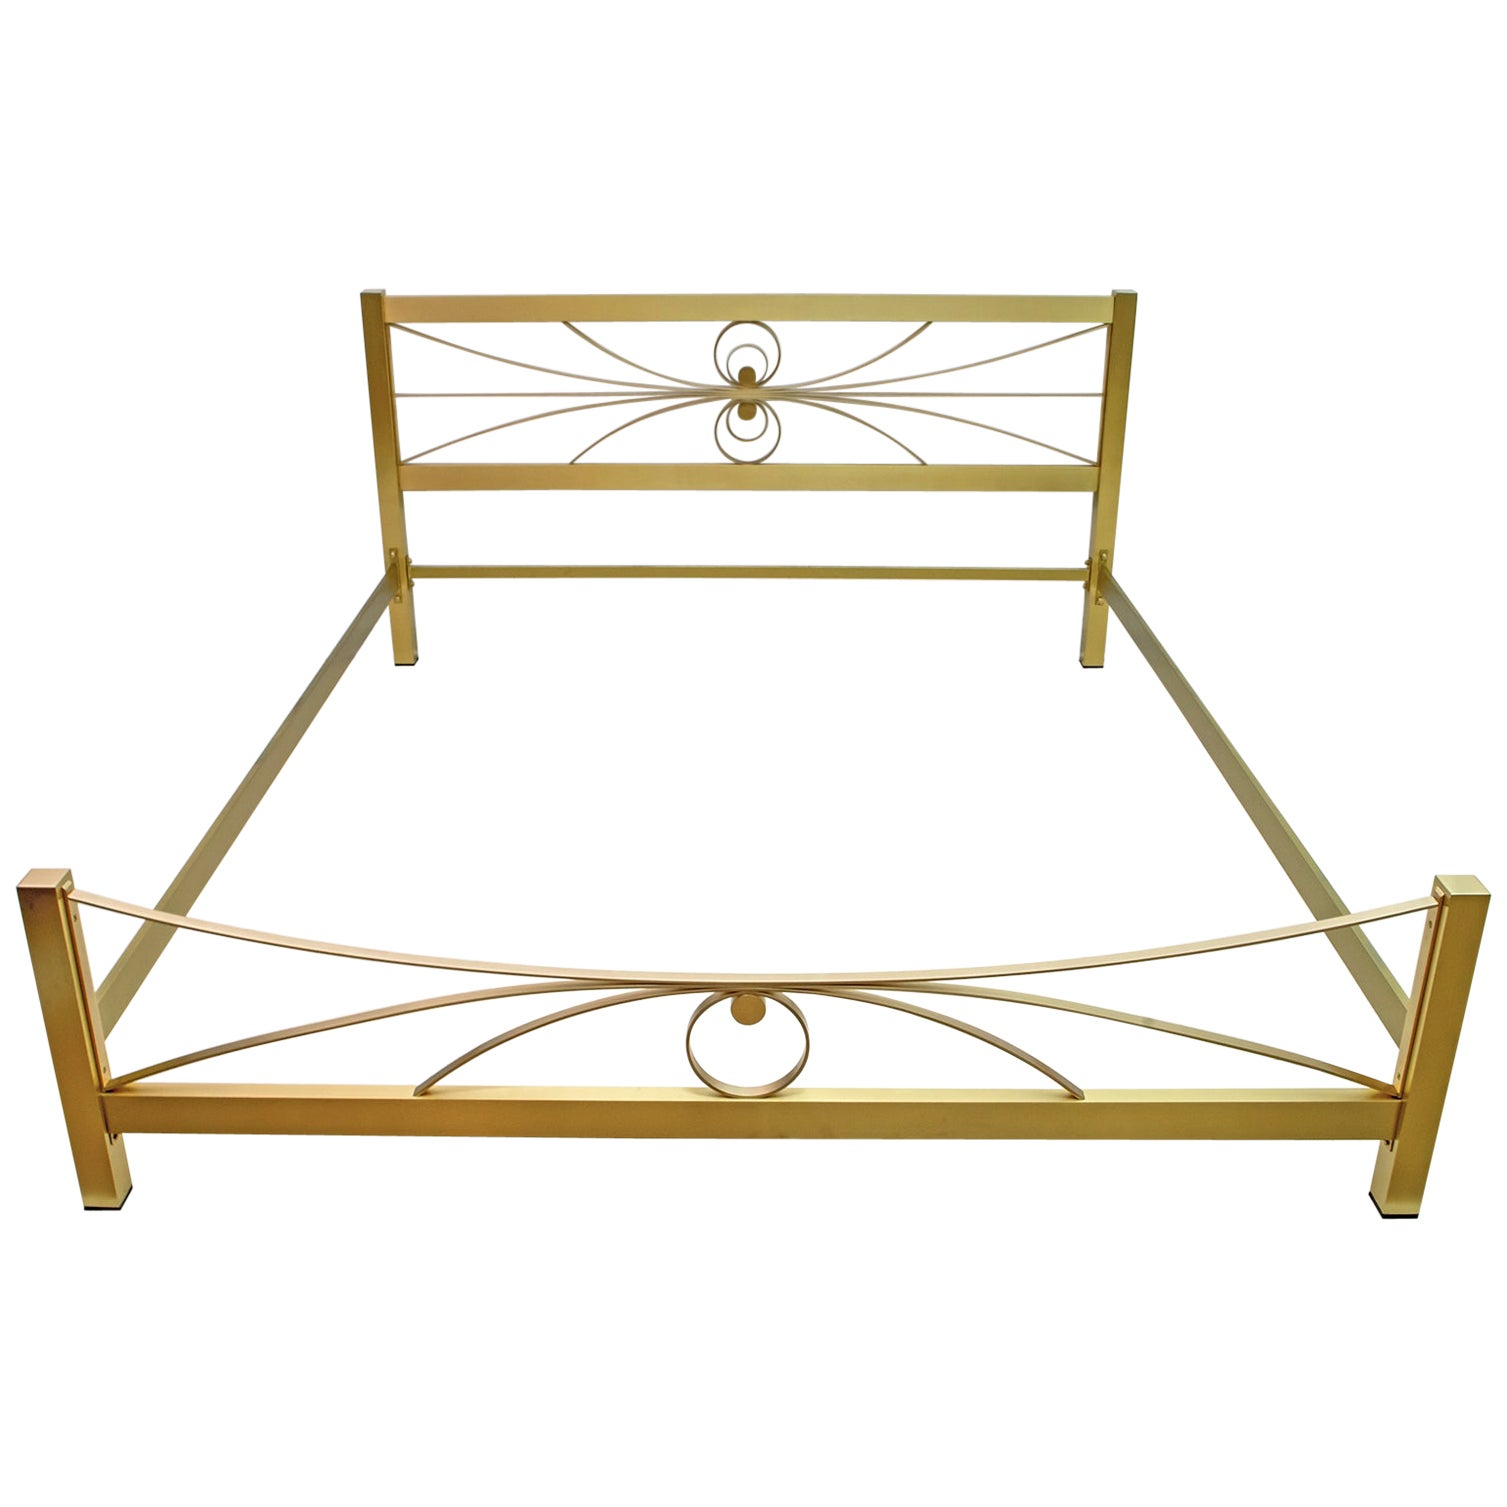 Luciano Frigerio Mid-Century Modern Gilded and Satin Brass Double Bed, 1970s